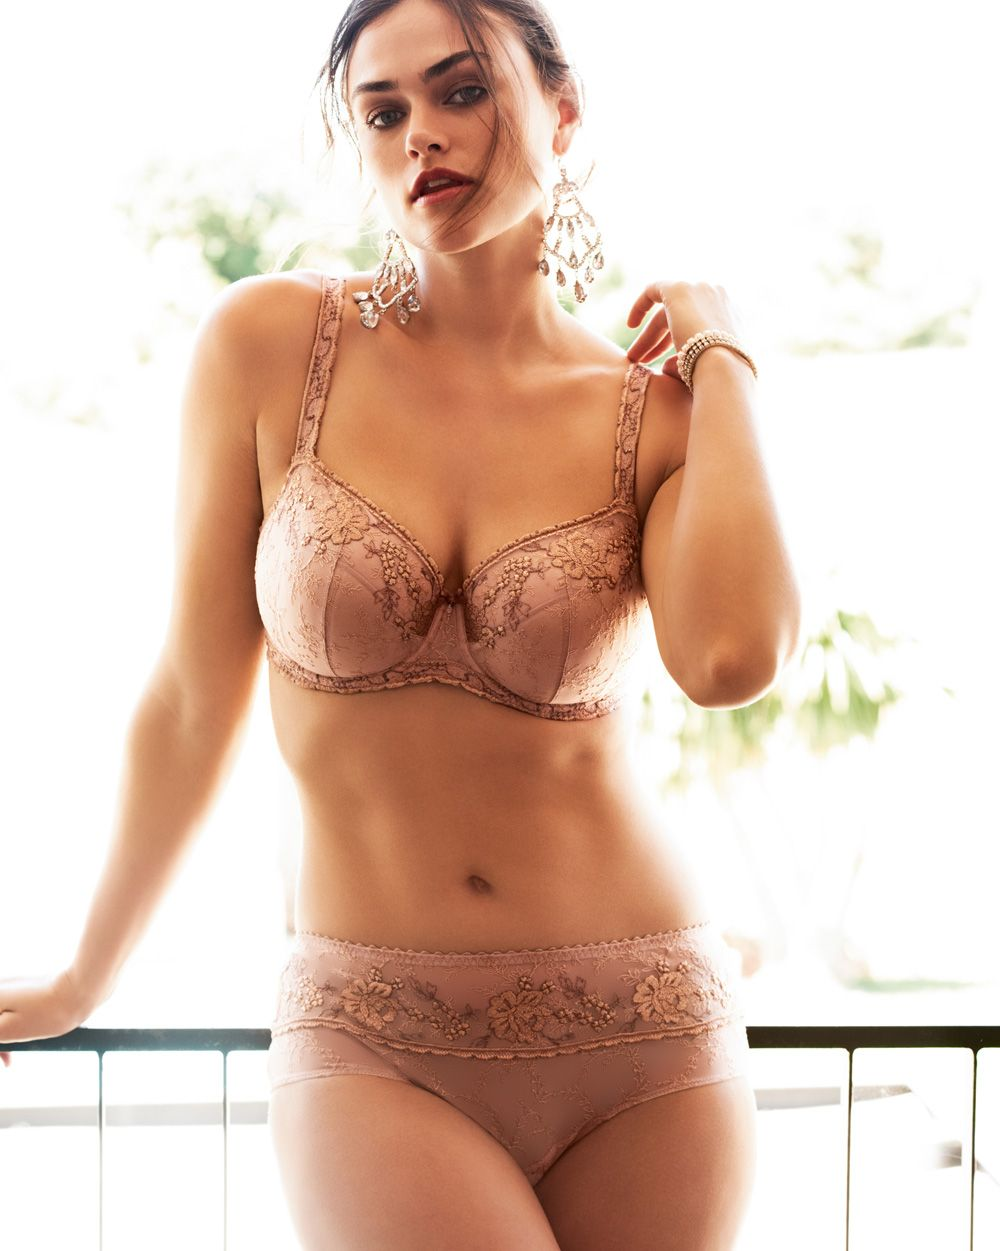 The Lingerie Range That Makes The Perfect Present – To You advise